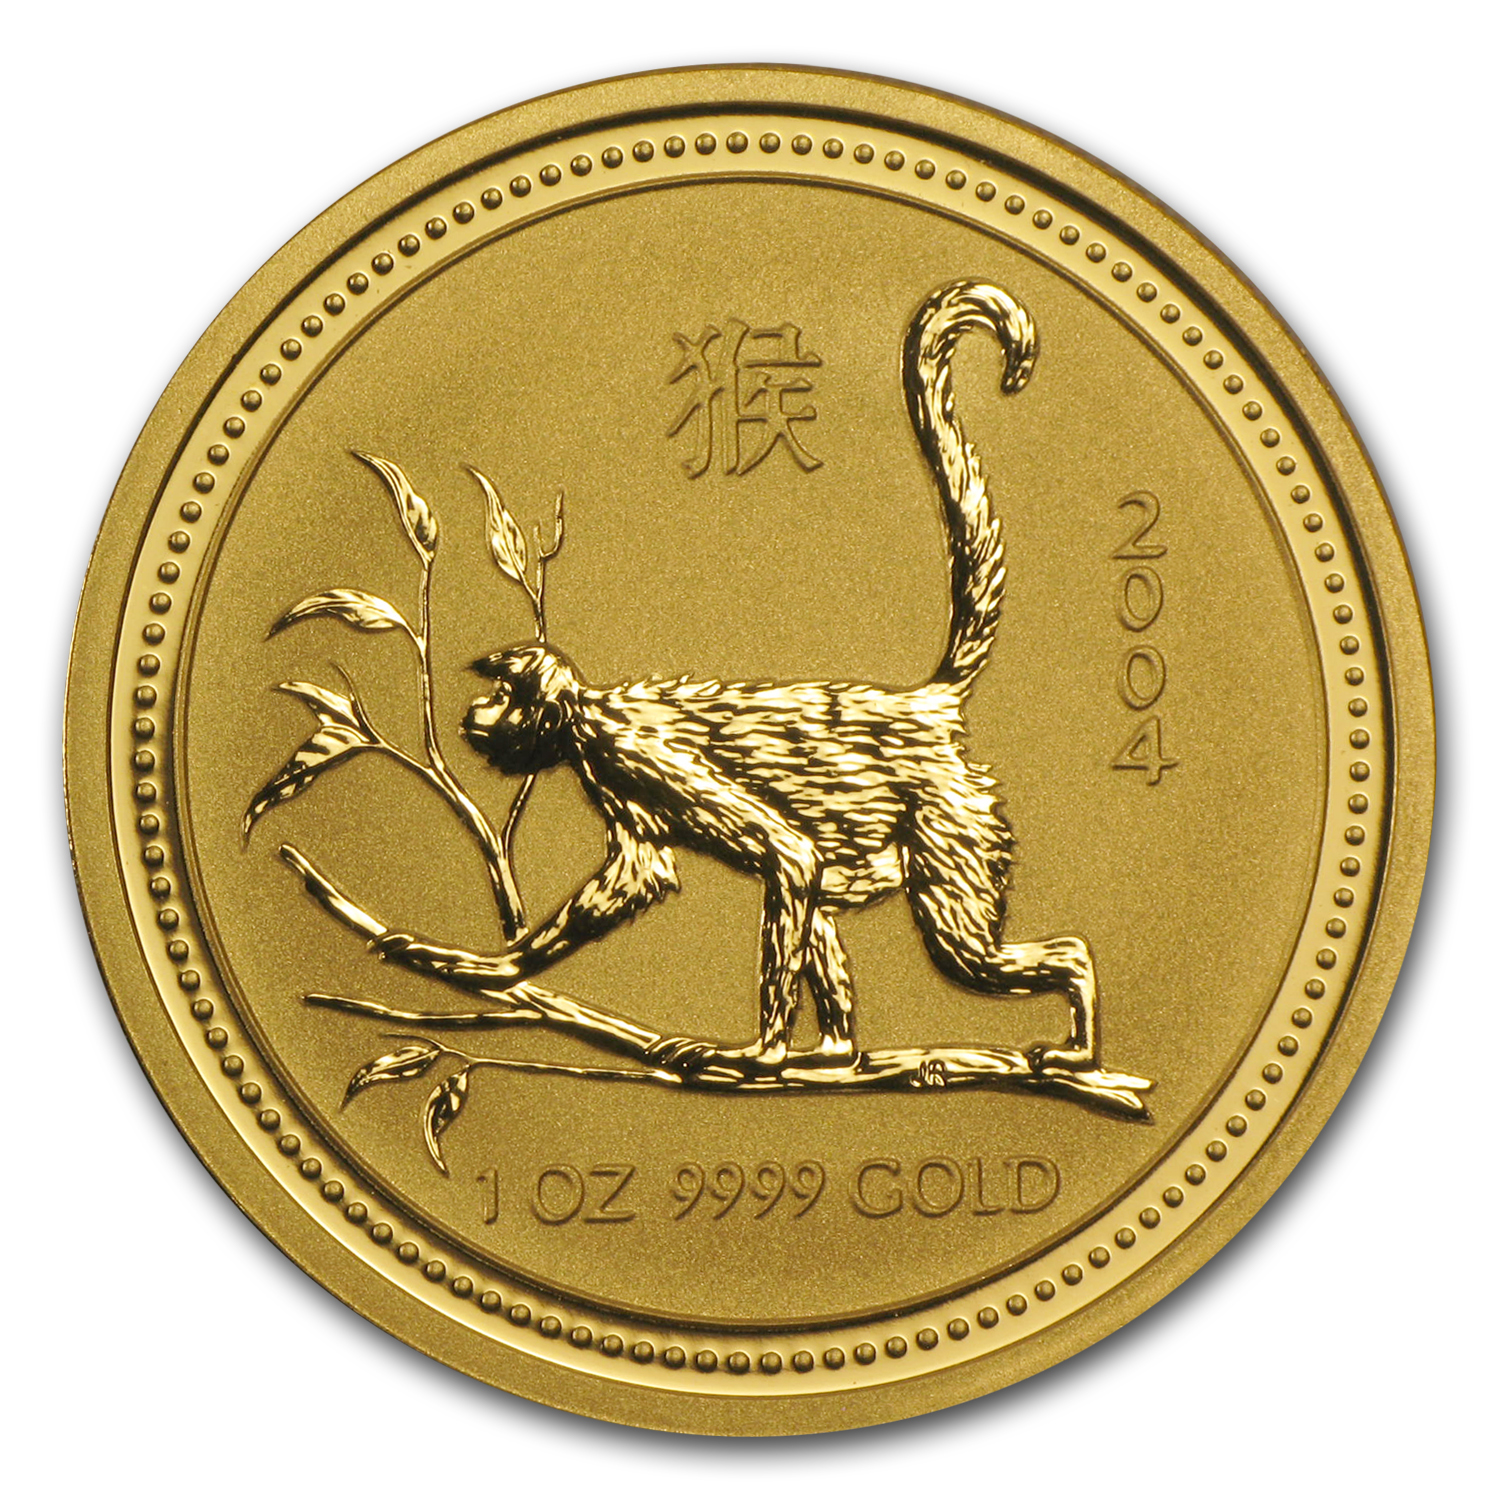 2004 Australia 1 oz Gold Lunar Monkey BU (Series I)